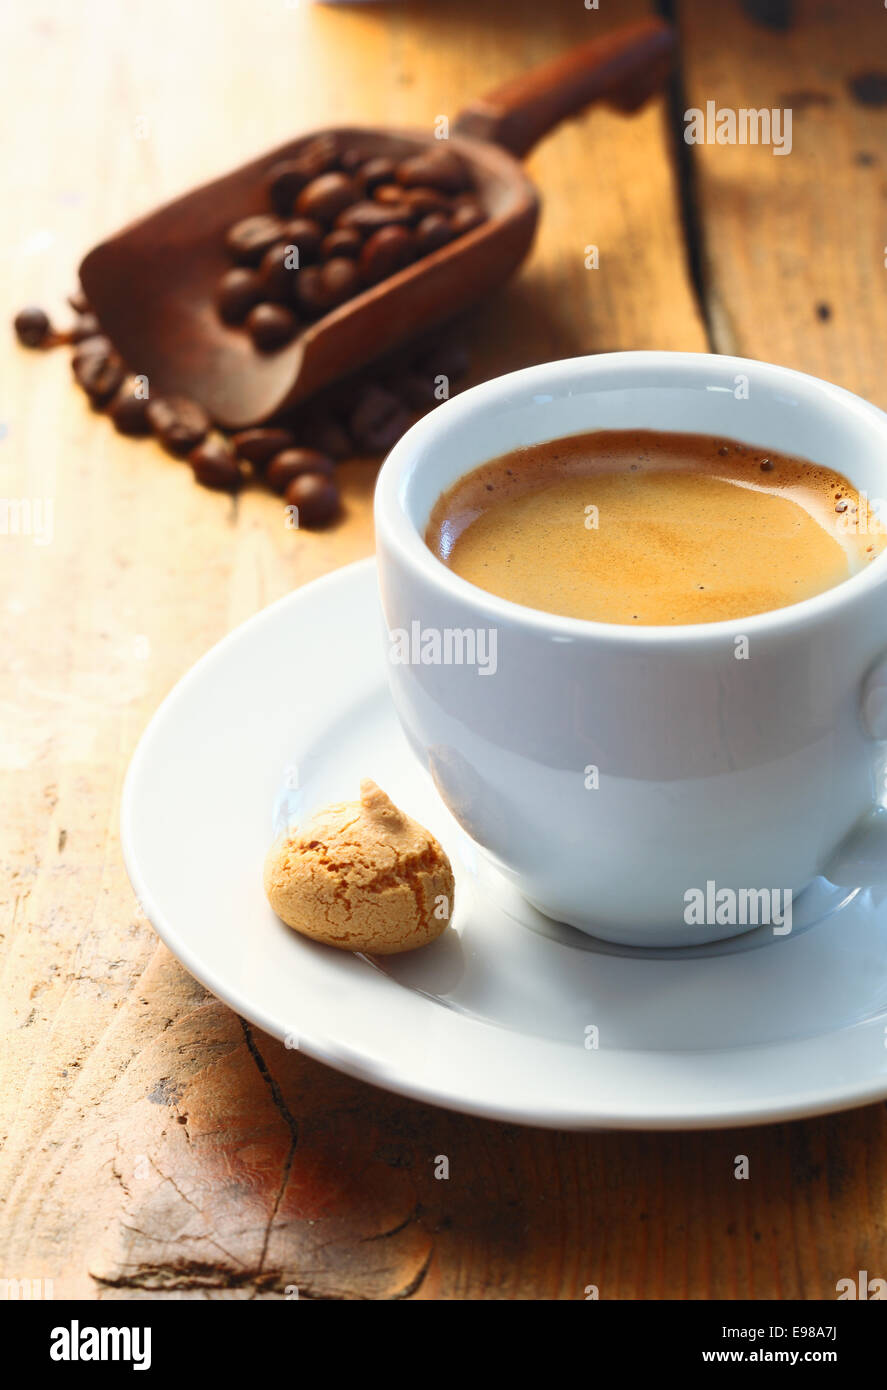 Strong aromatic espresso coffee served in a small cup with a macaroon on the side and a scoop of coffee beans in - Stock Image